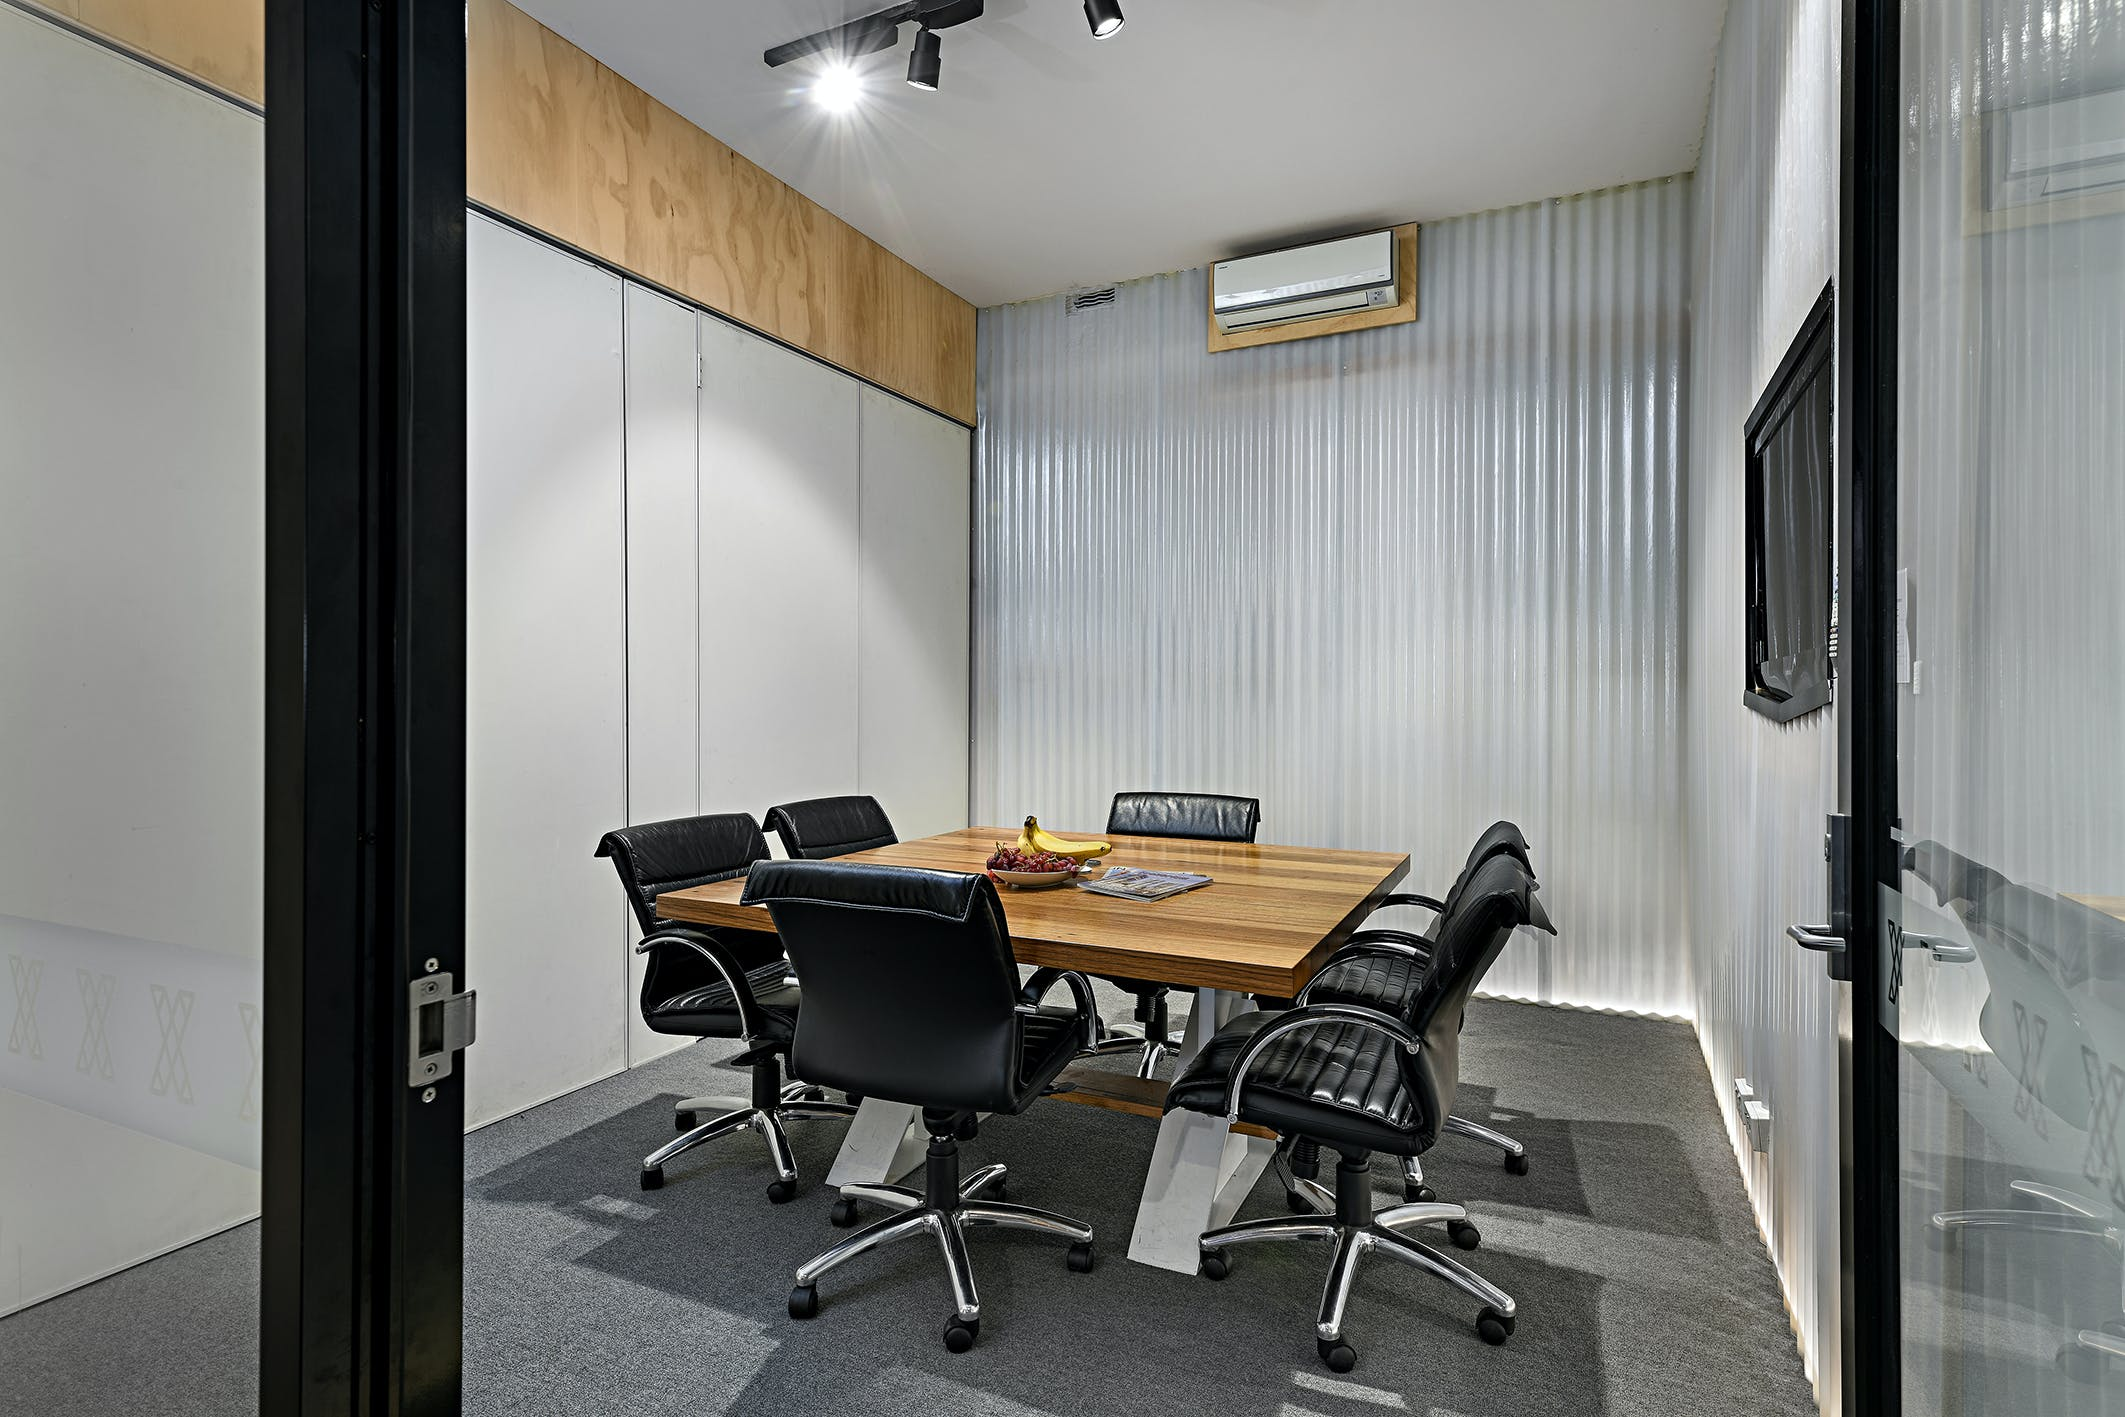 This space has everything you may need to host your next team meeting, image 1